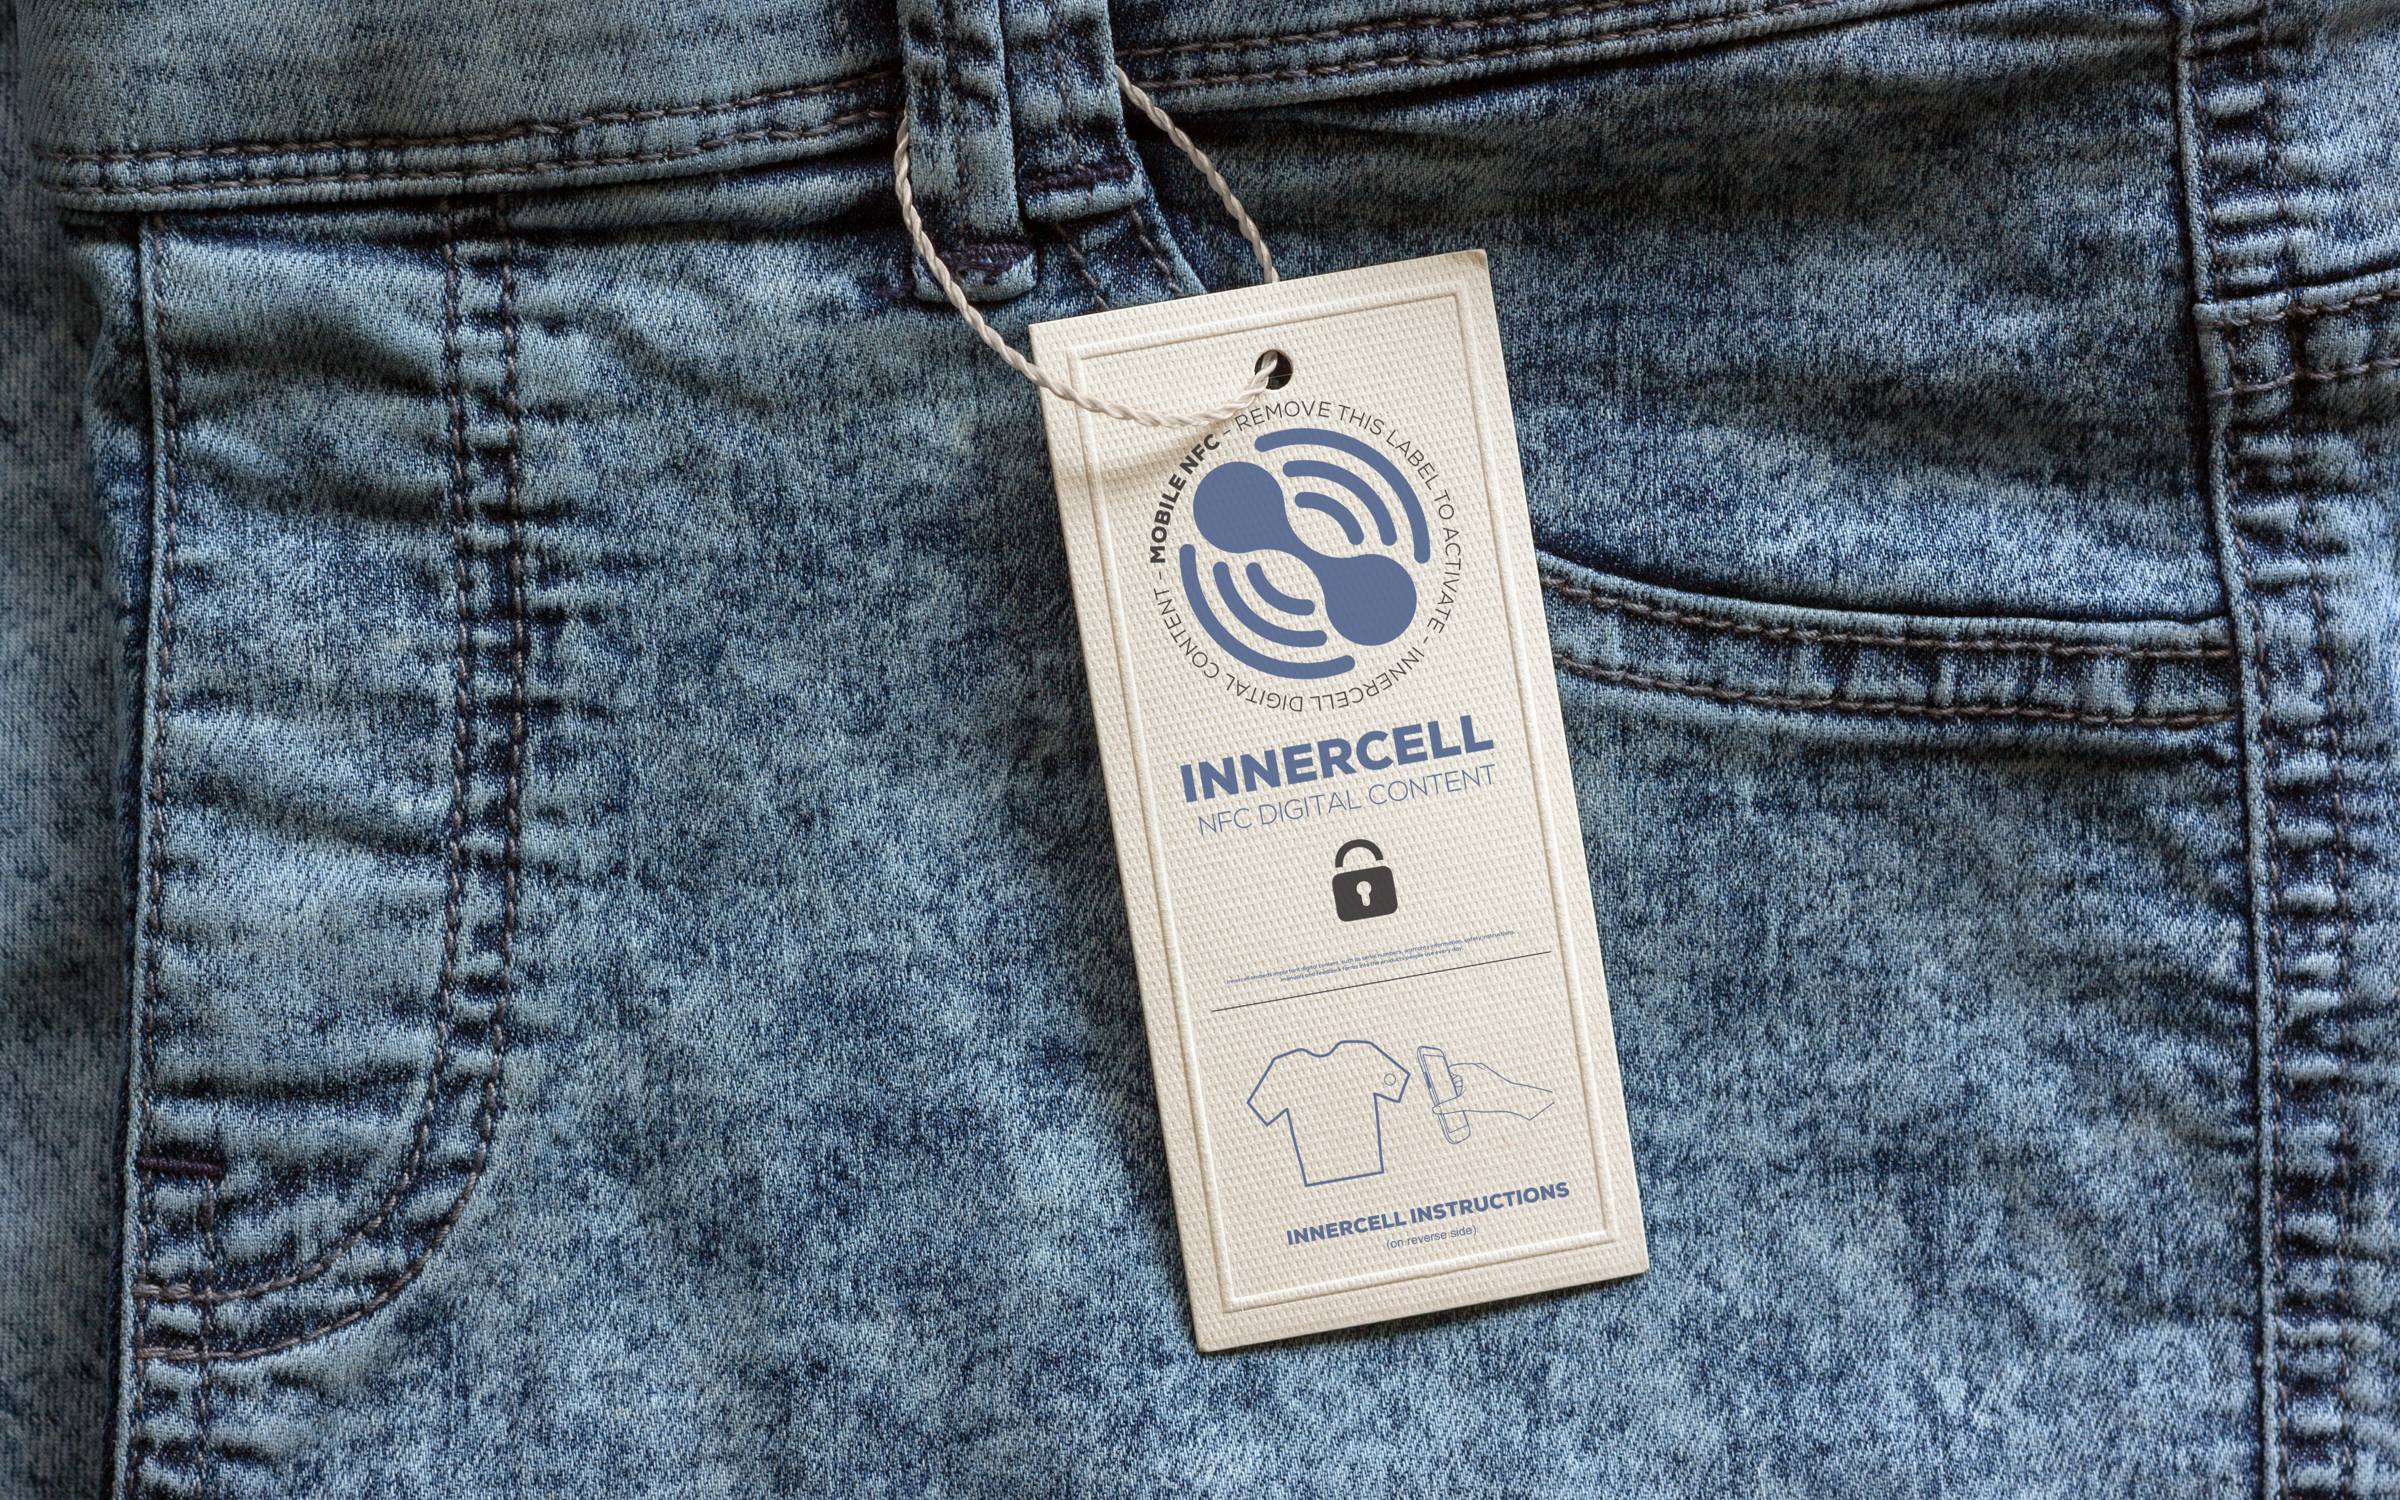 Innercell 6